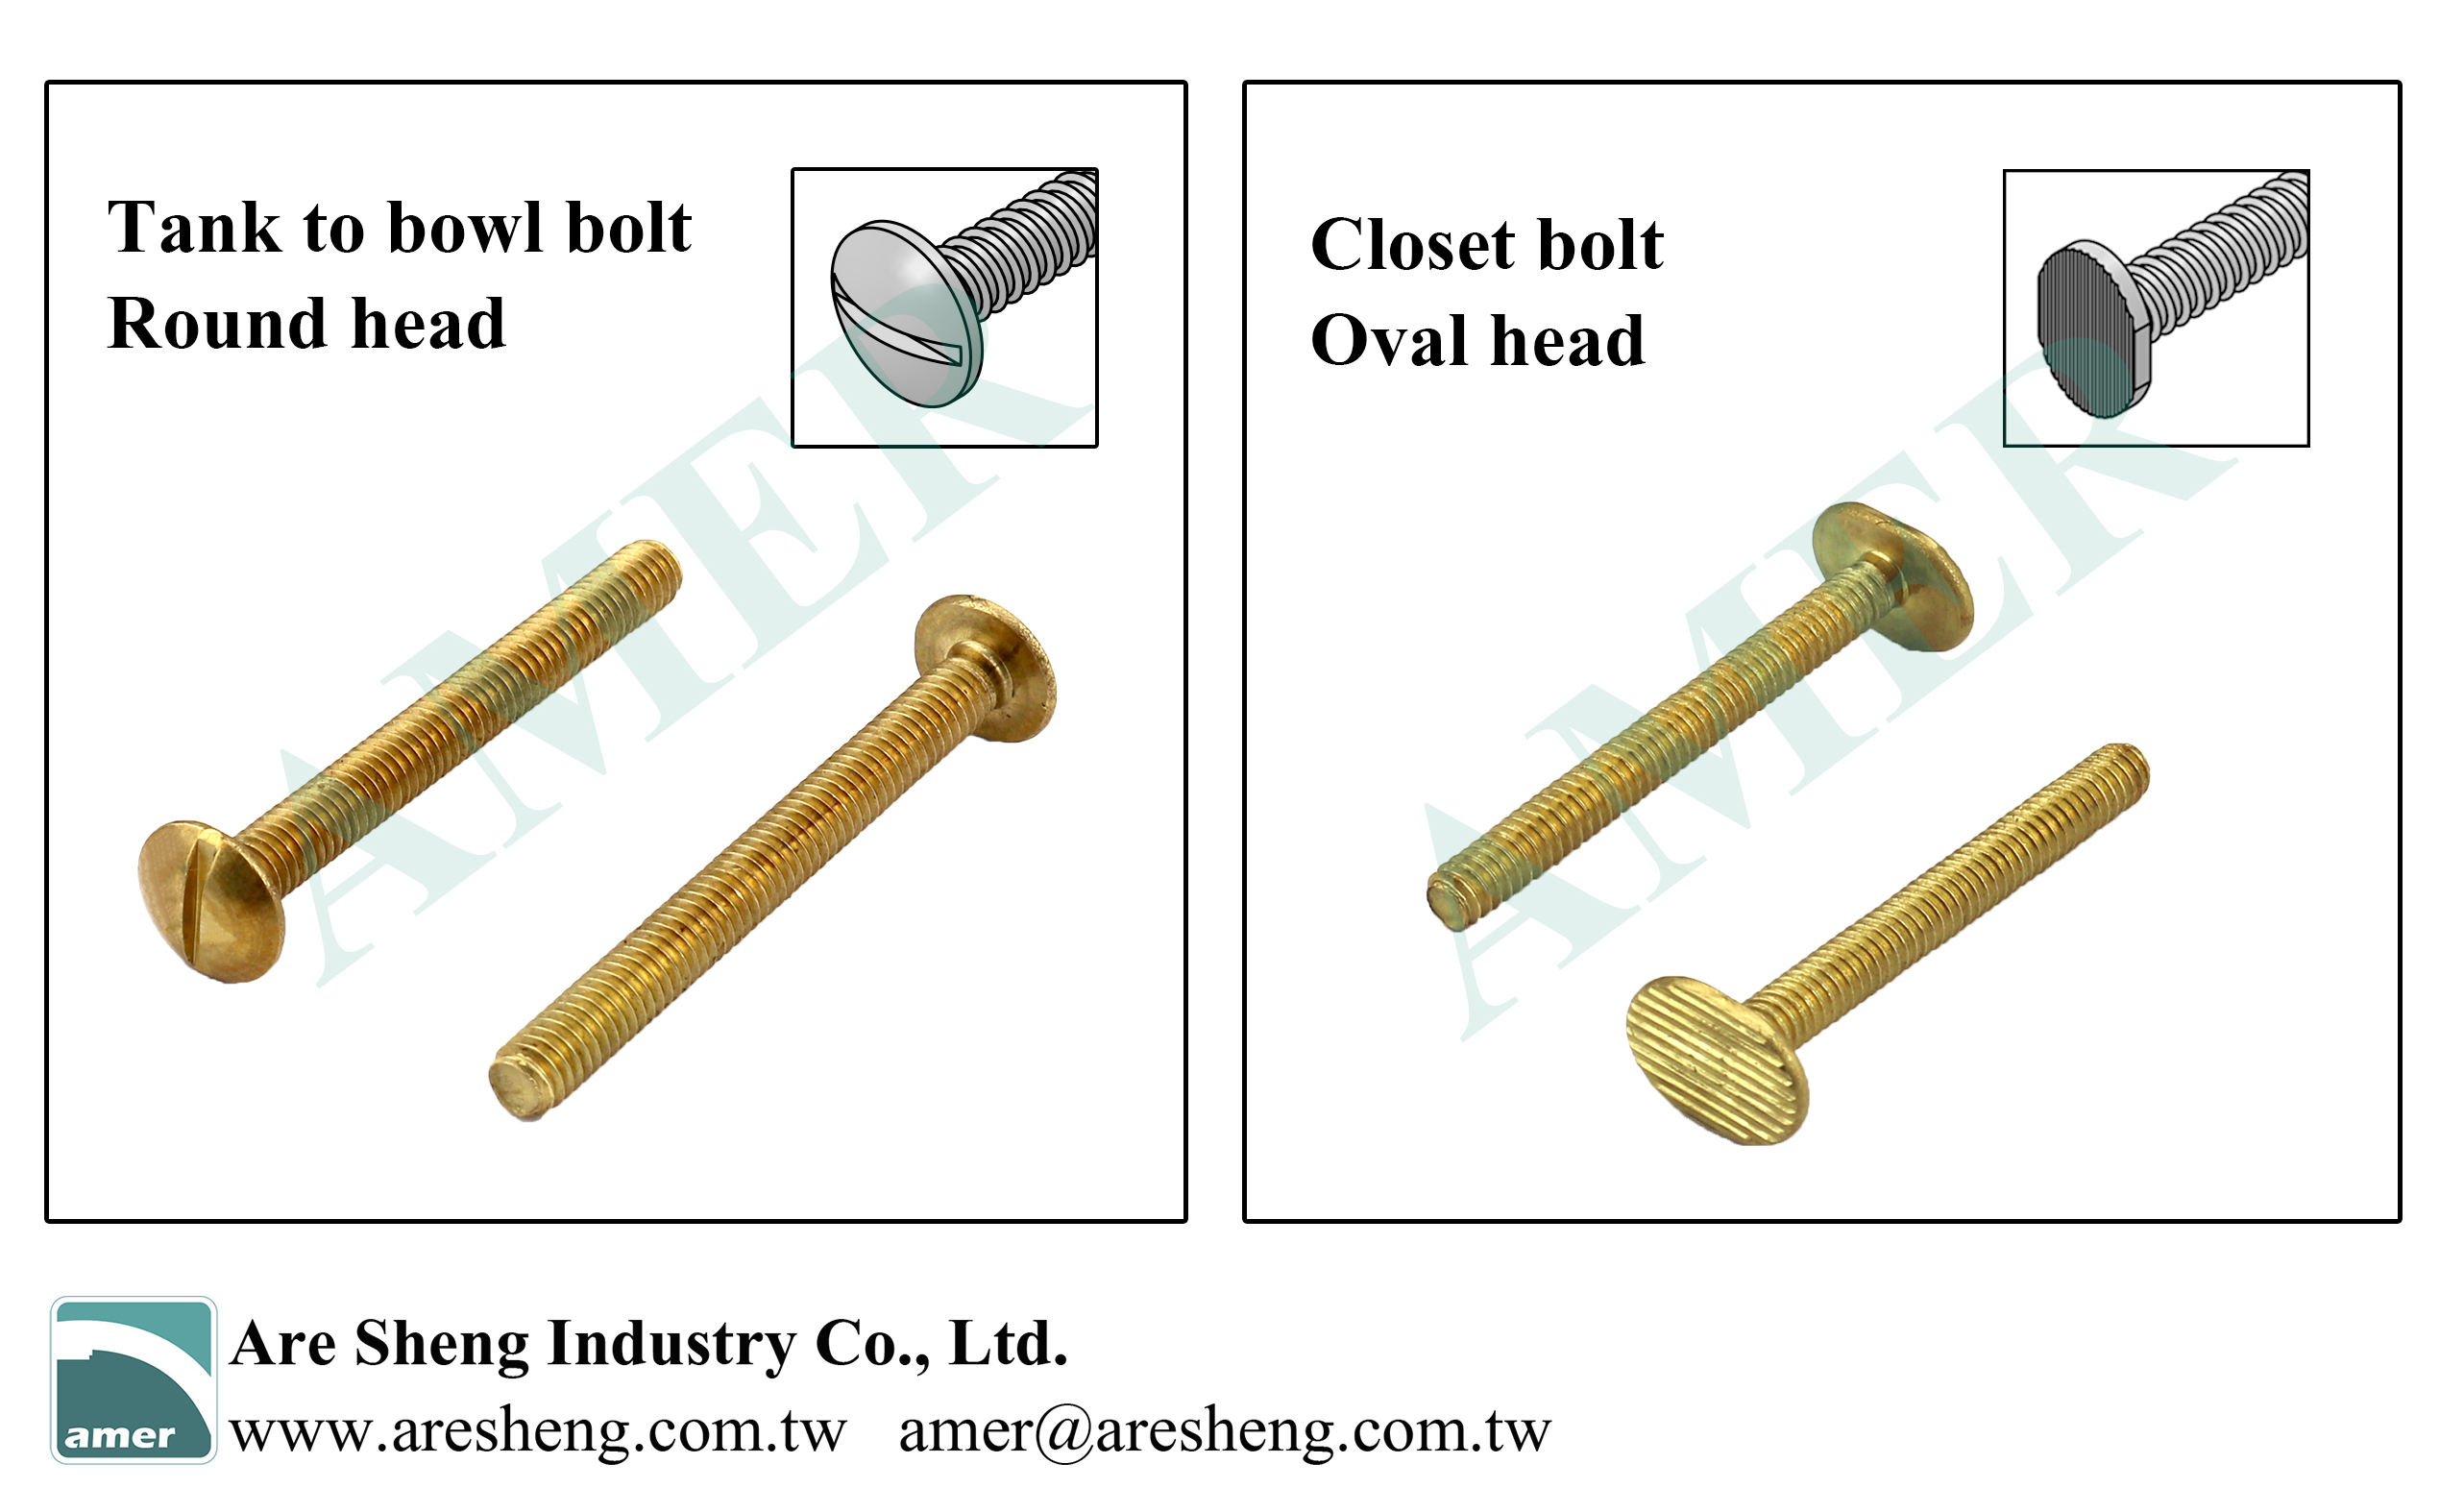 tank to bowl bolt and floor to bowl bolt